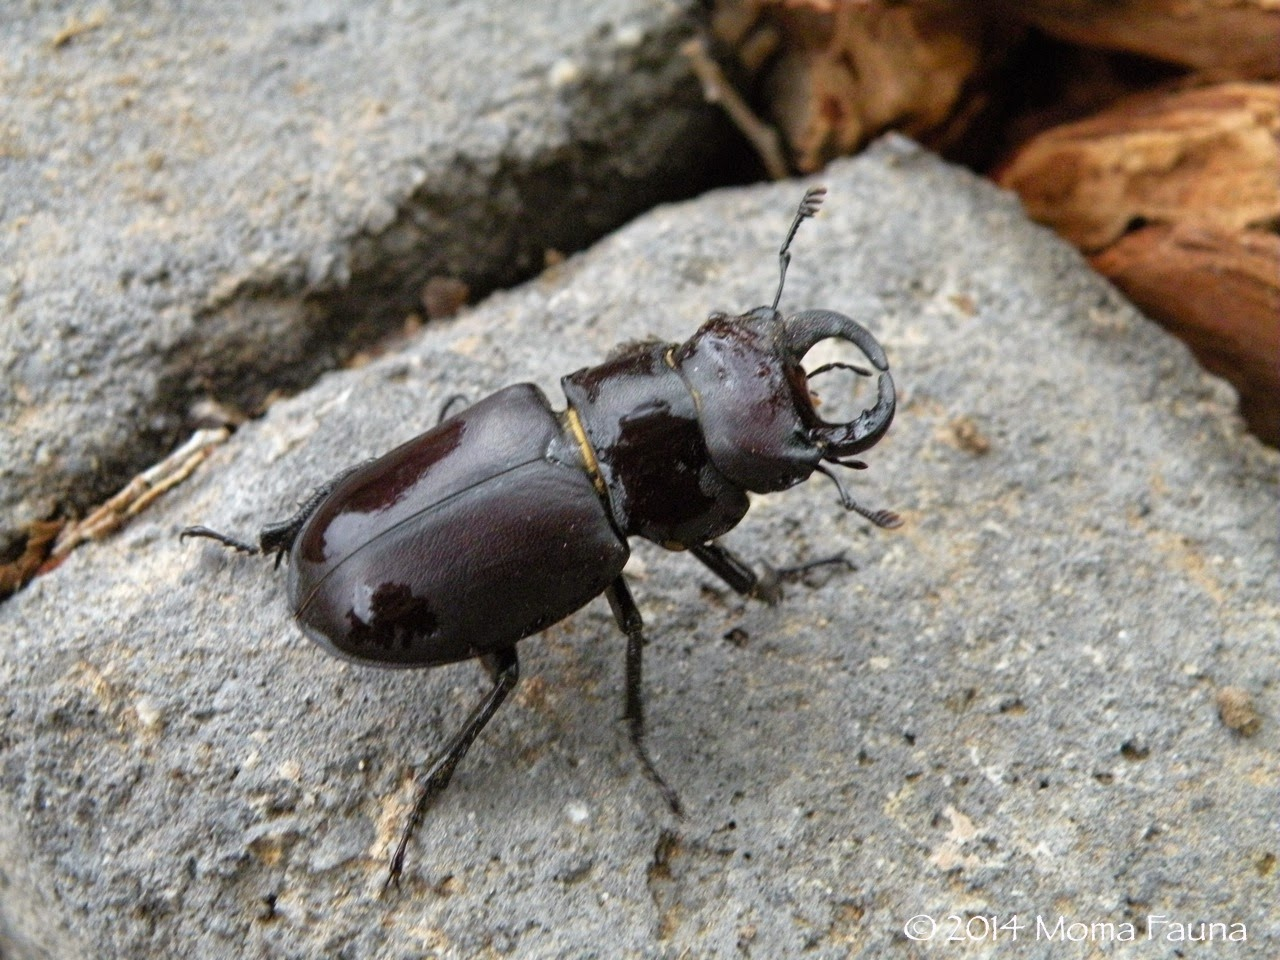 Probably a Cottonwood Stag Beetle (Lucanus mazama)